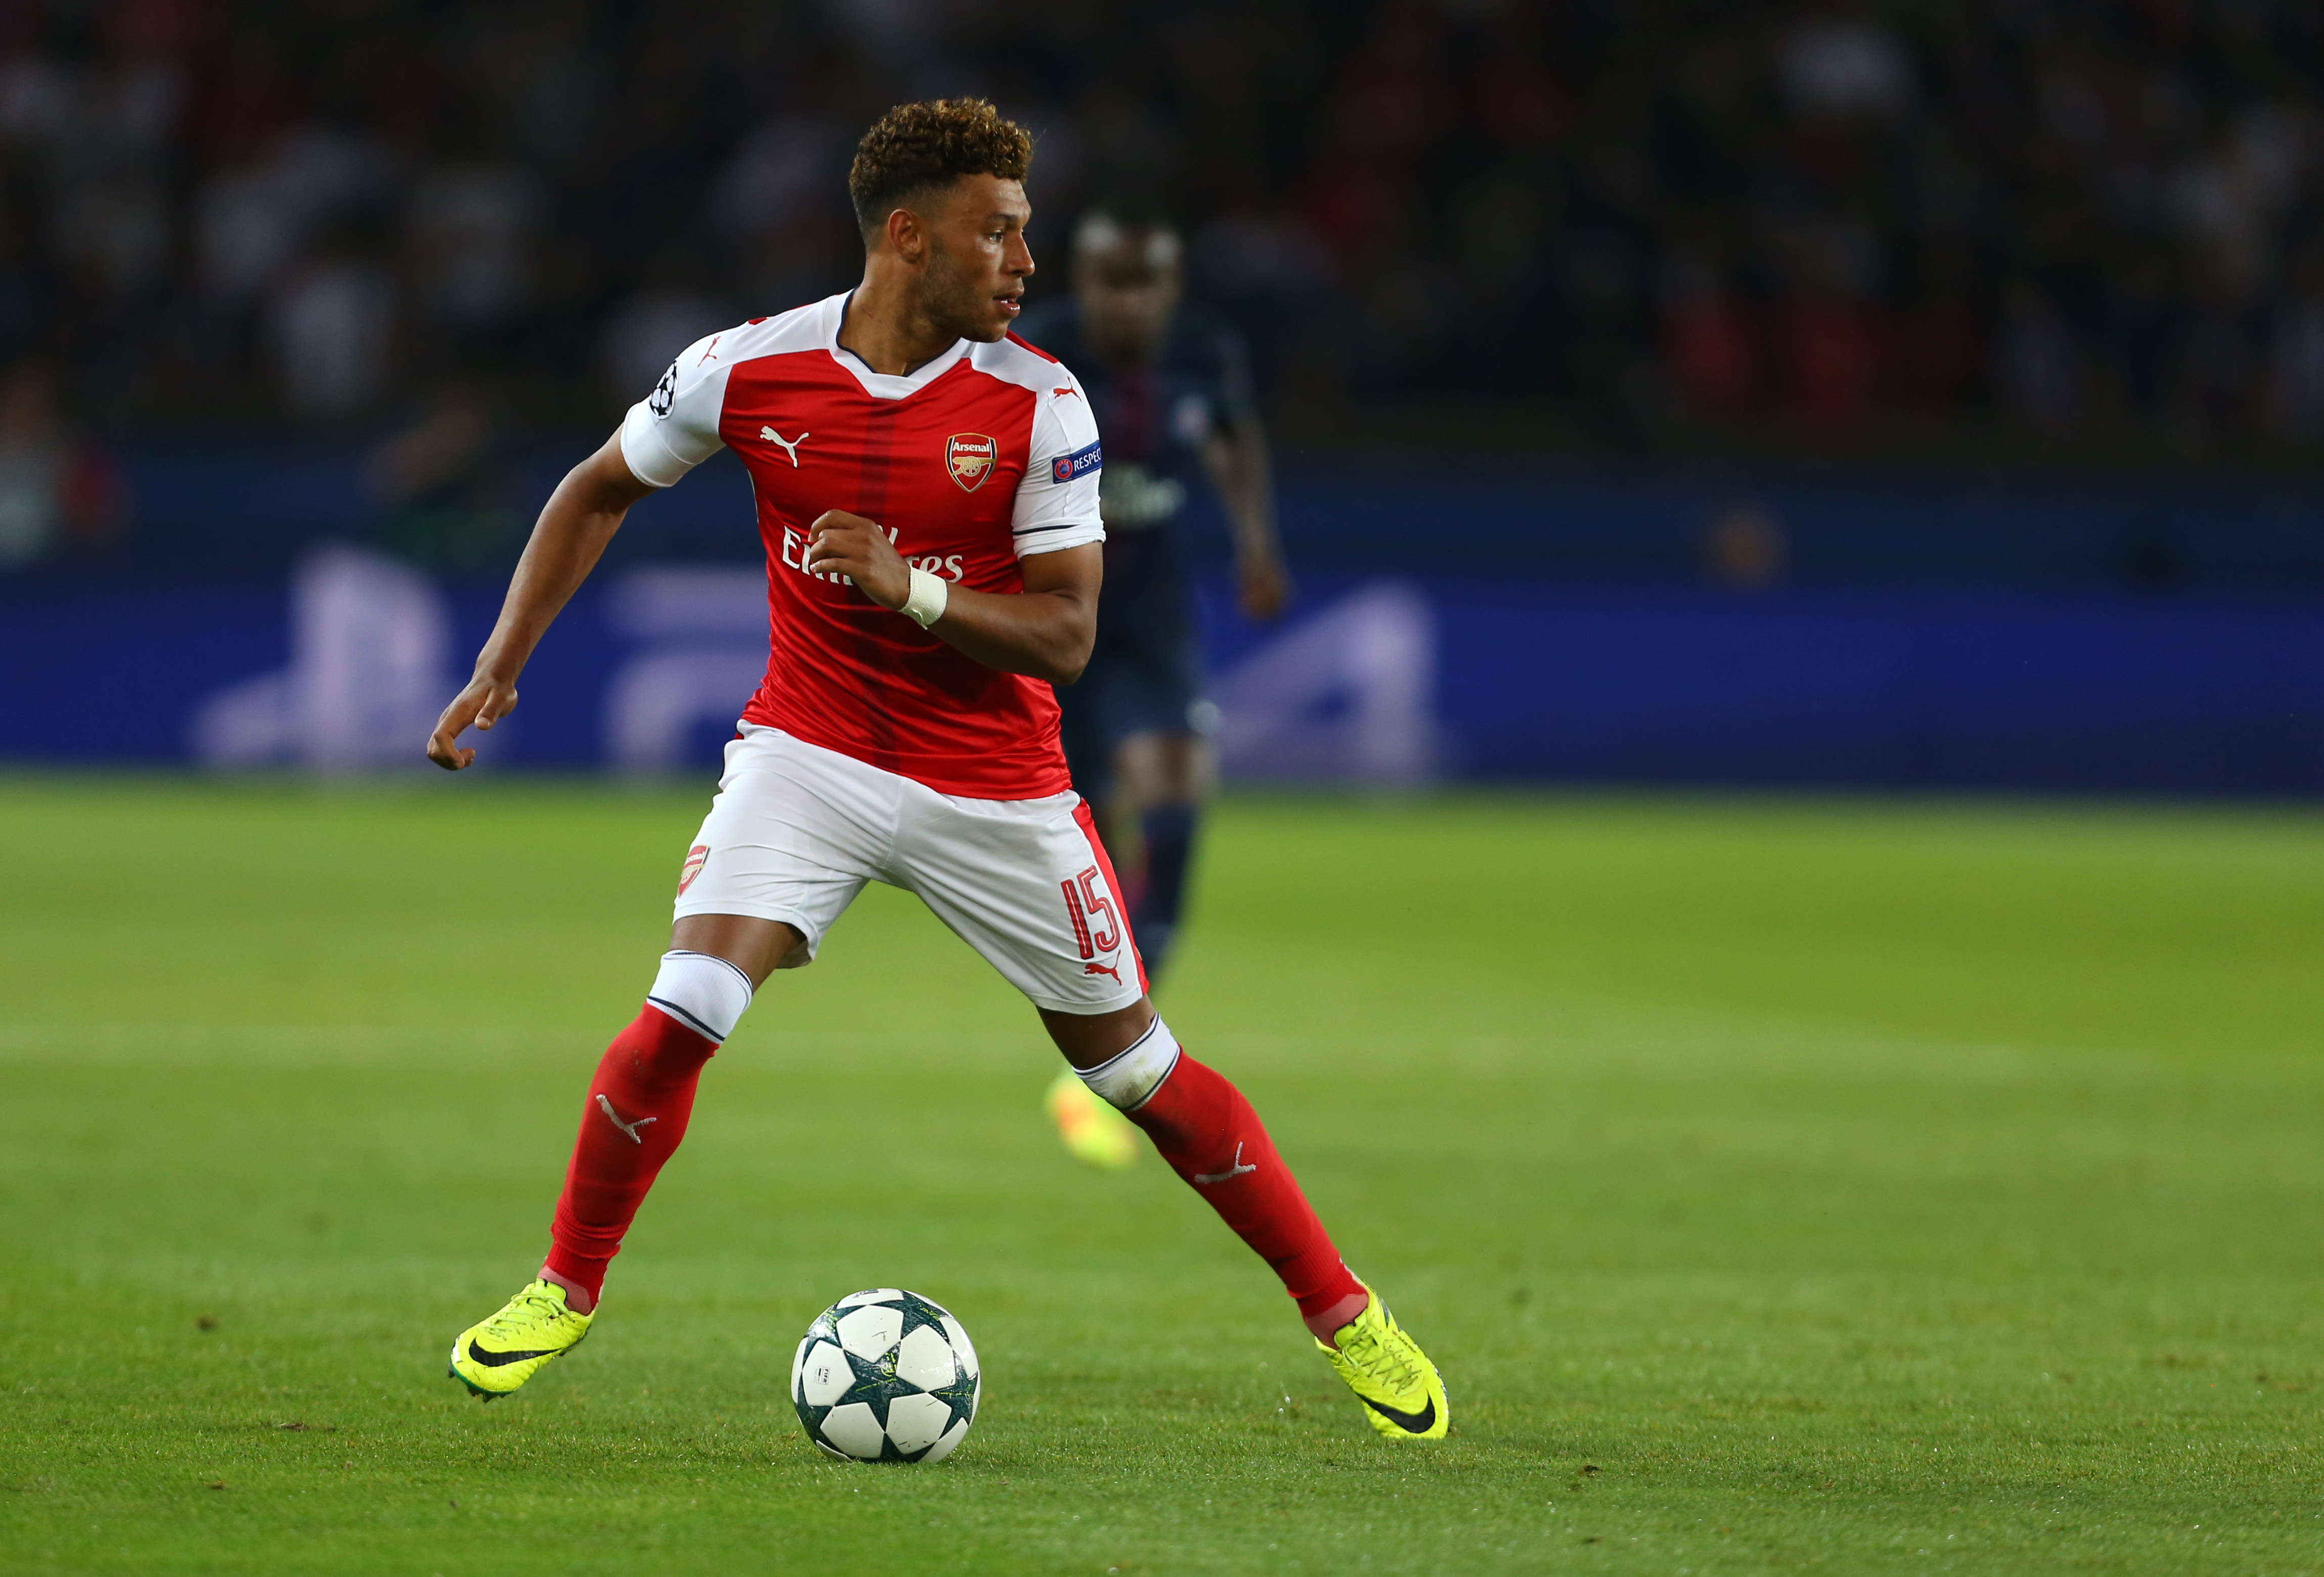 Arsenal: Alex Oxlade-Chamberlain Becoming Impossible To Defend